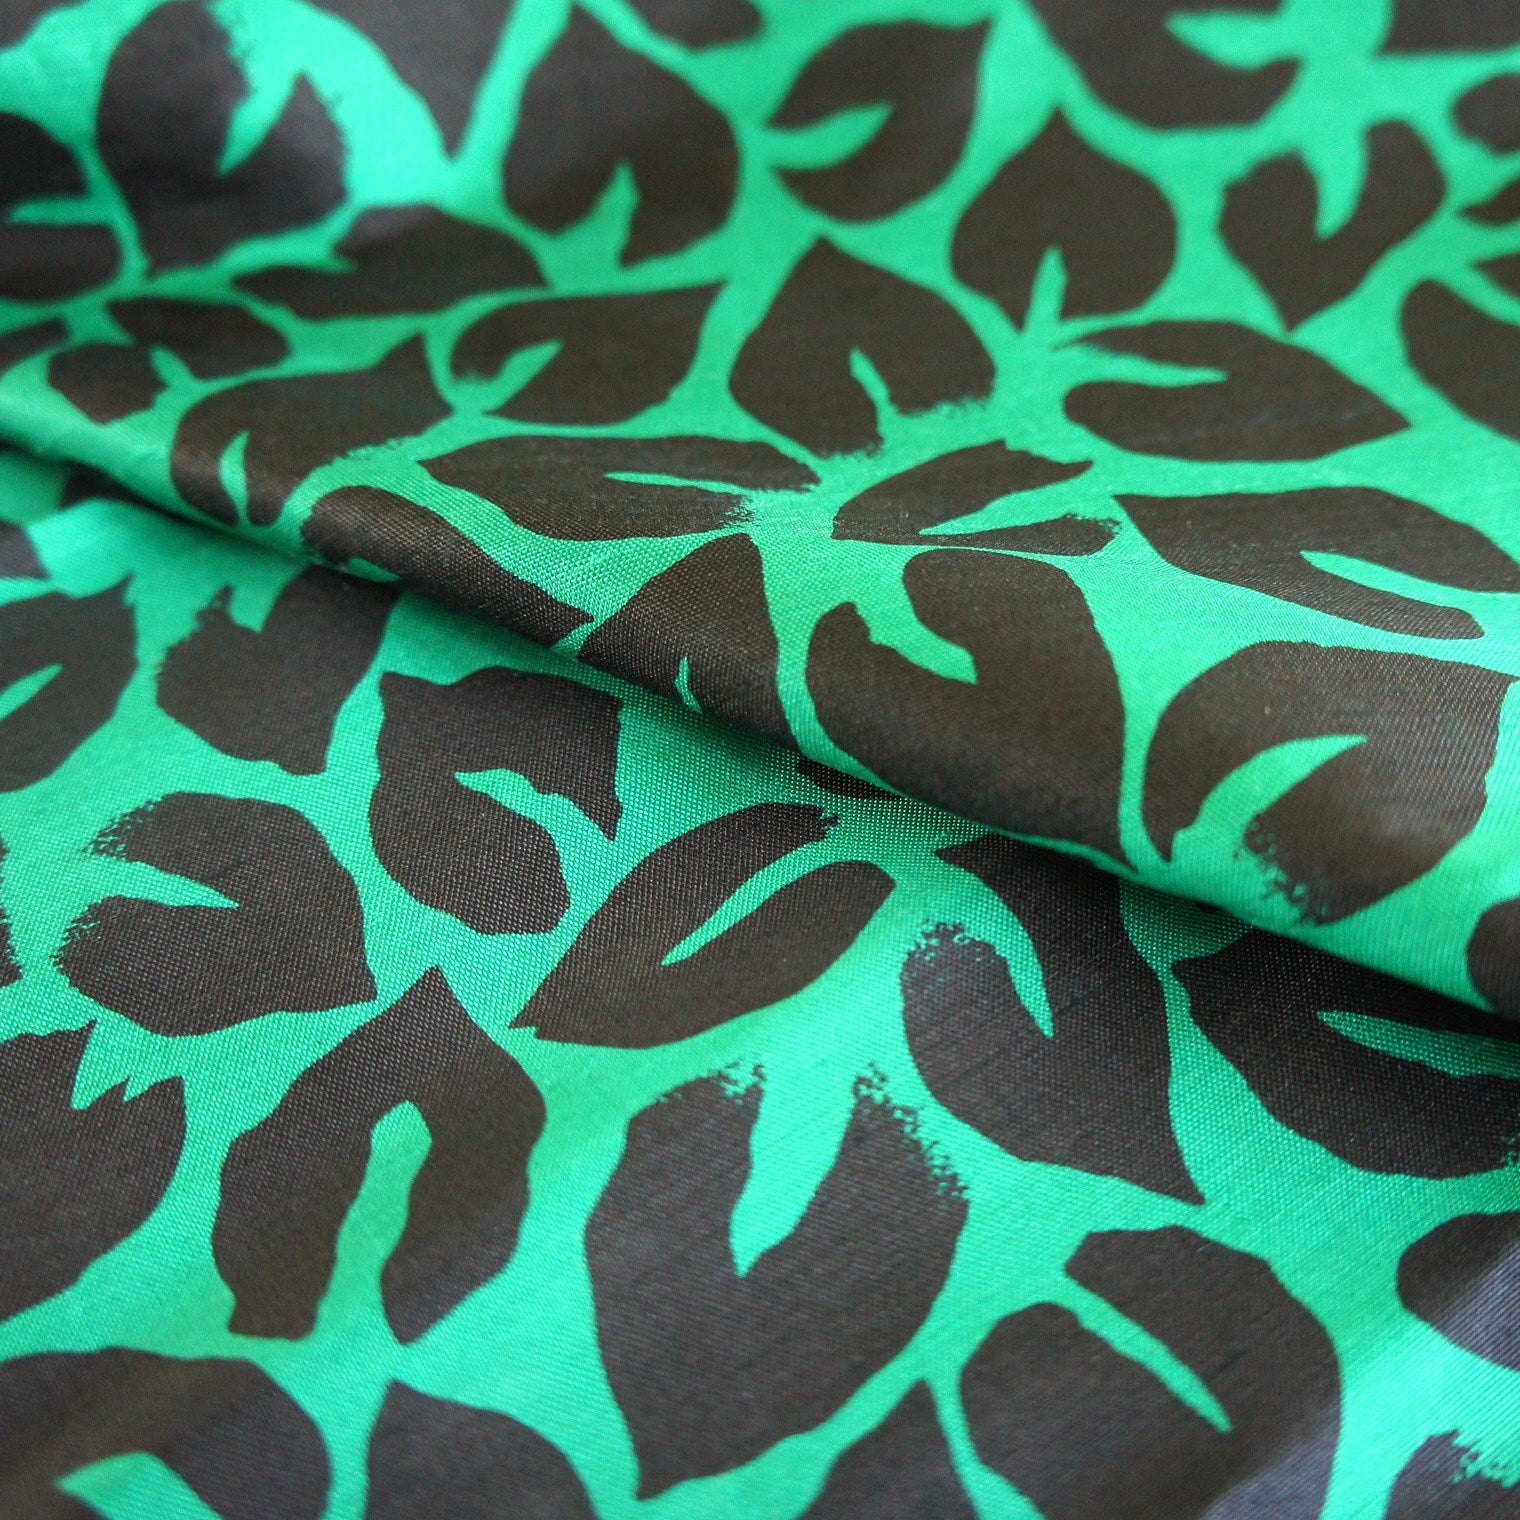 Emerald Green with Black Leaf Print